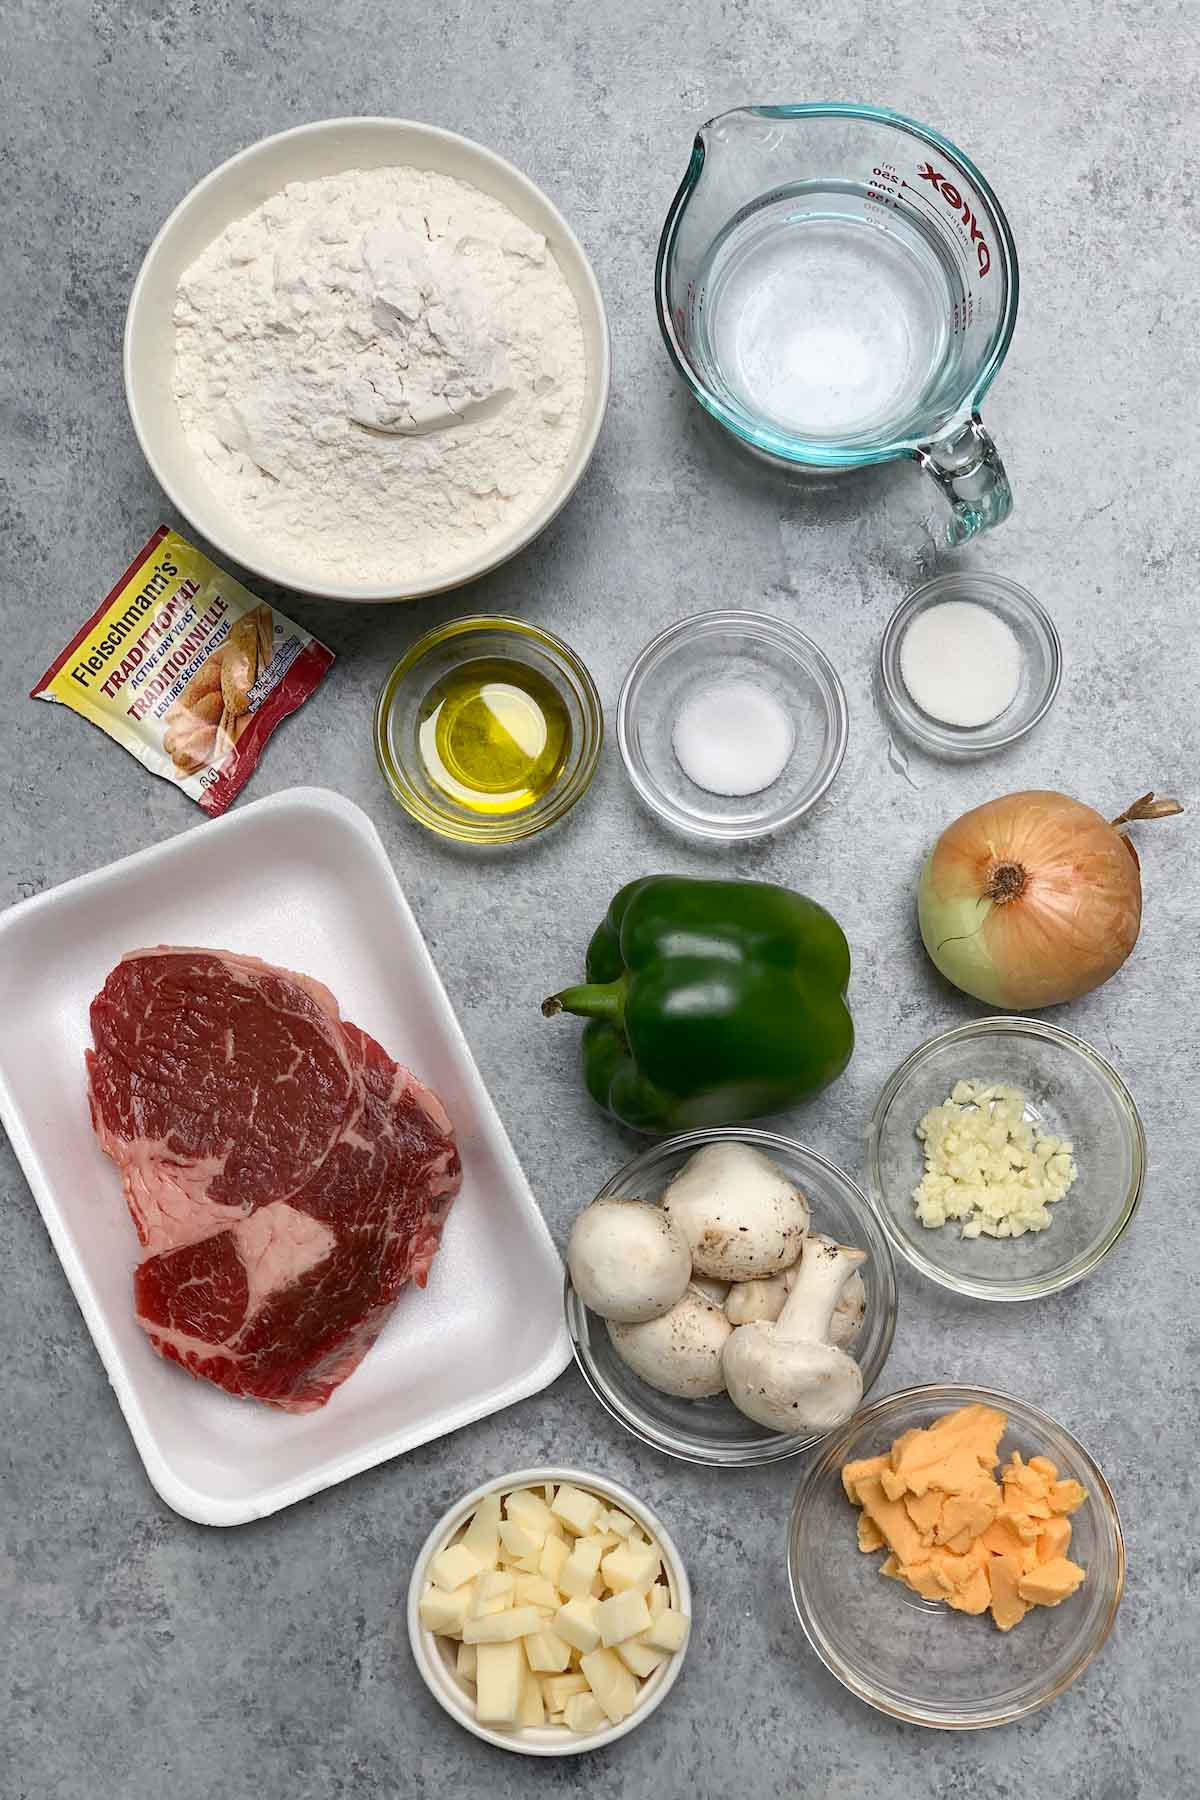 Ingredients for making homemade Domino's Philly Cheese Steak Pizza